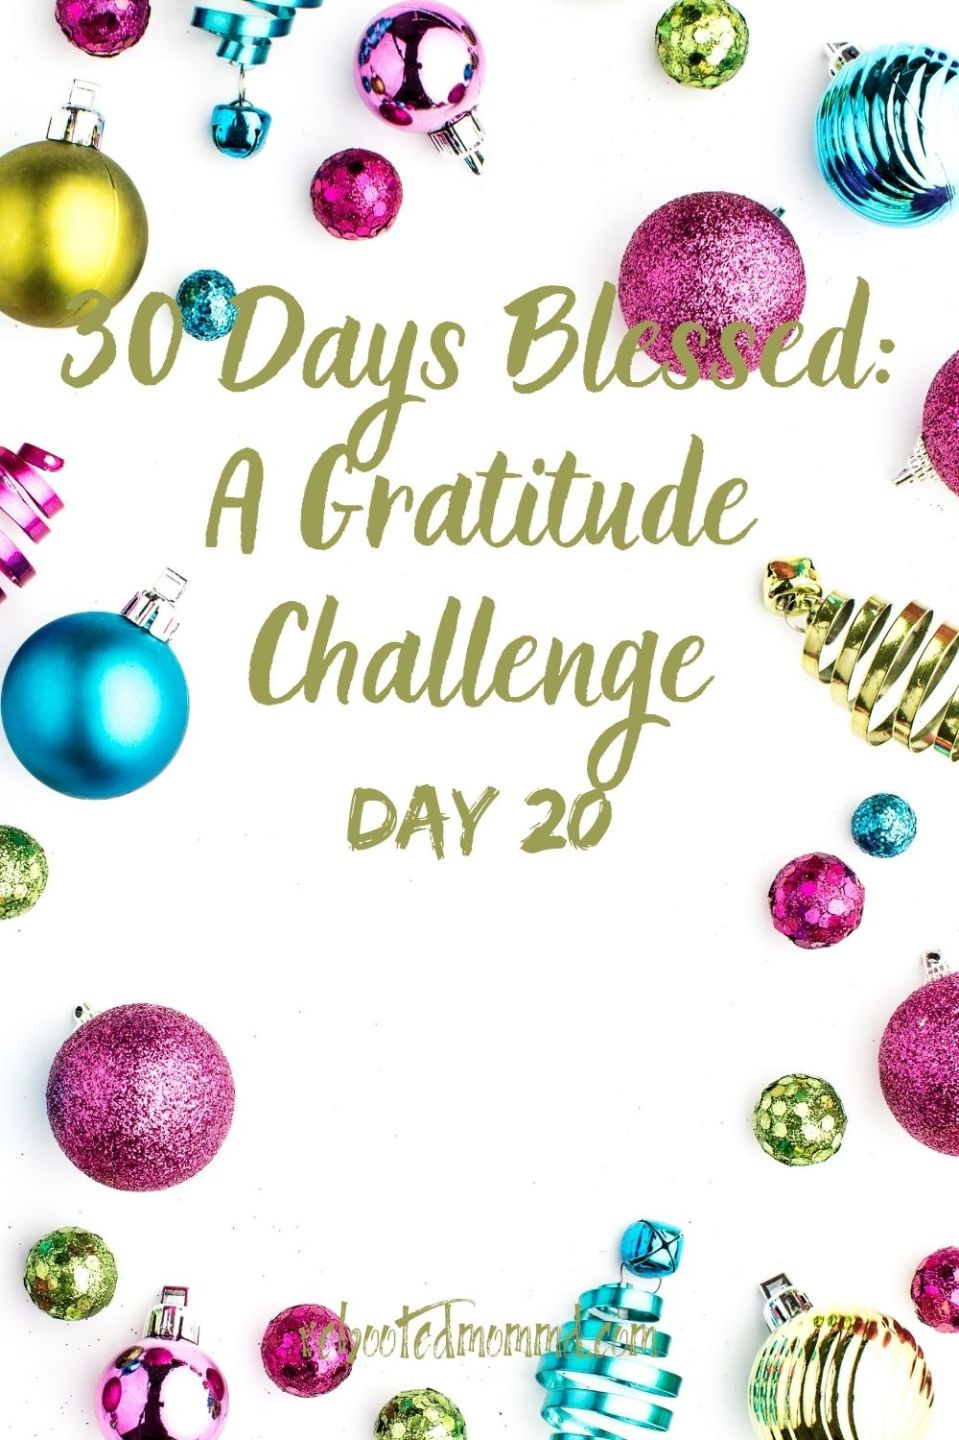 Day 20. Challenge Yourself to Live in the Present